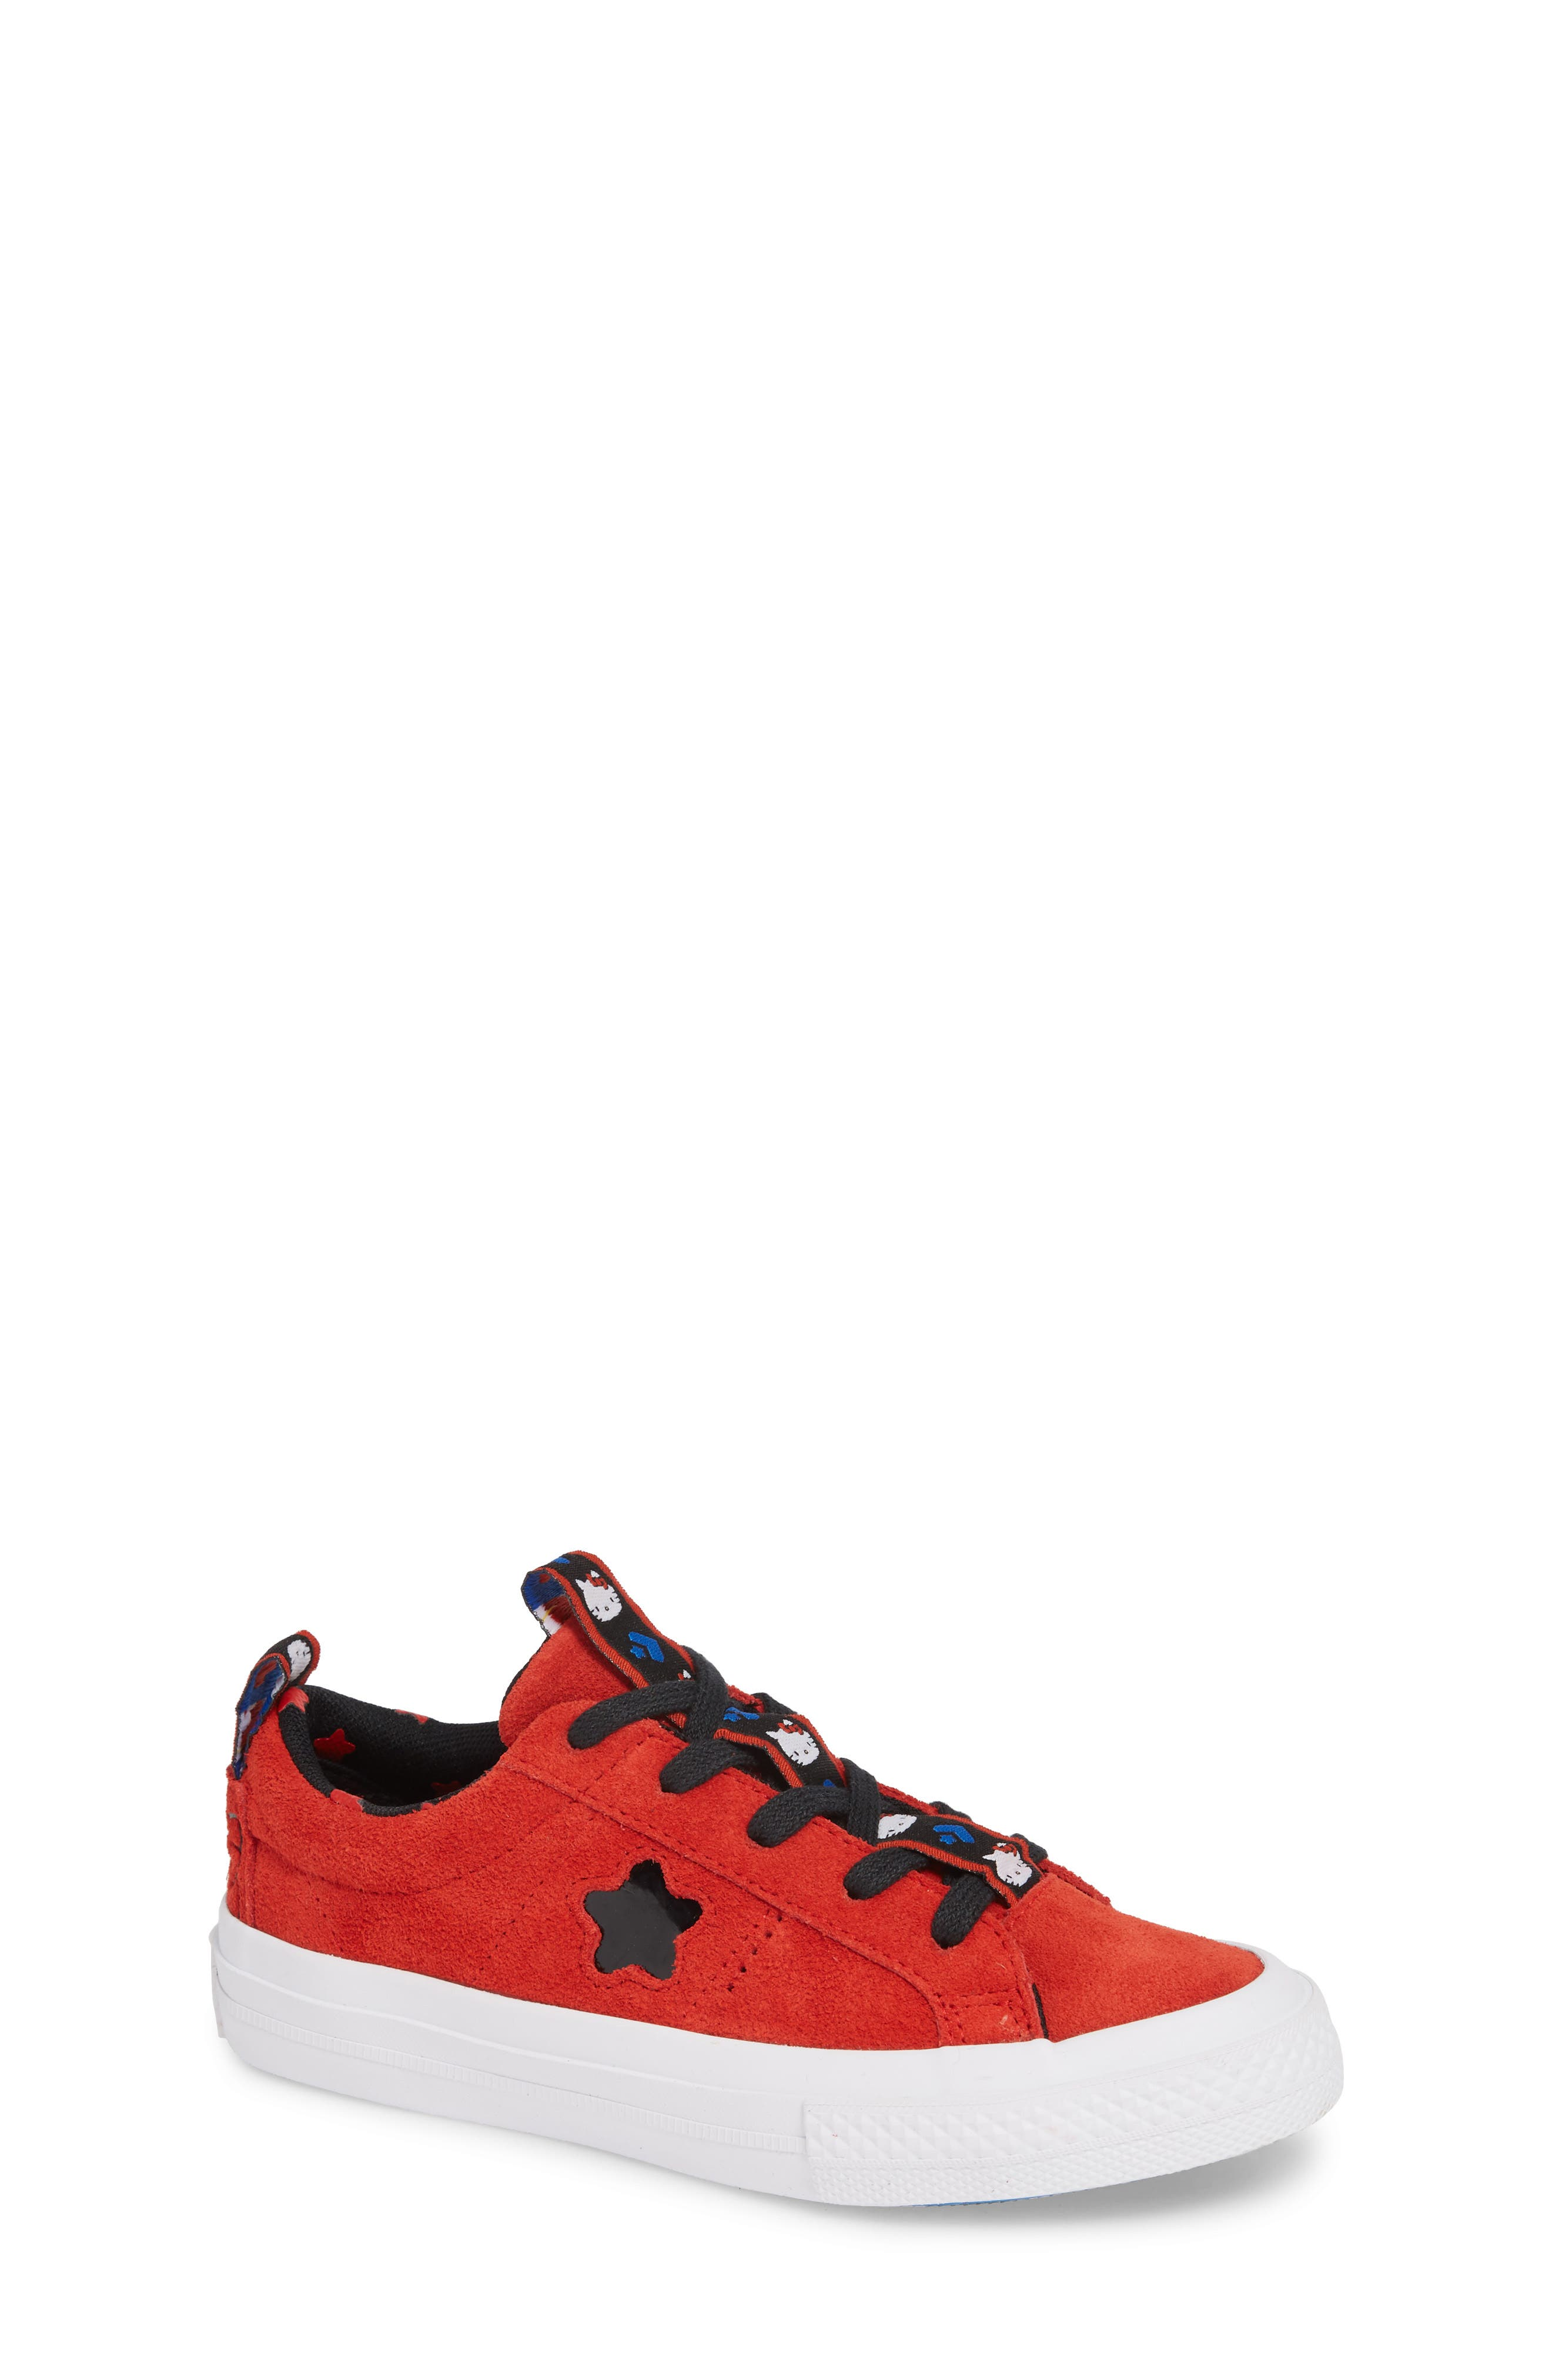 x Hello Kitty<sup>®</sup> One Star Low Top Sneaker,                             Main thumbnail 1, color,                             FIERY RED SUEDE